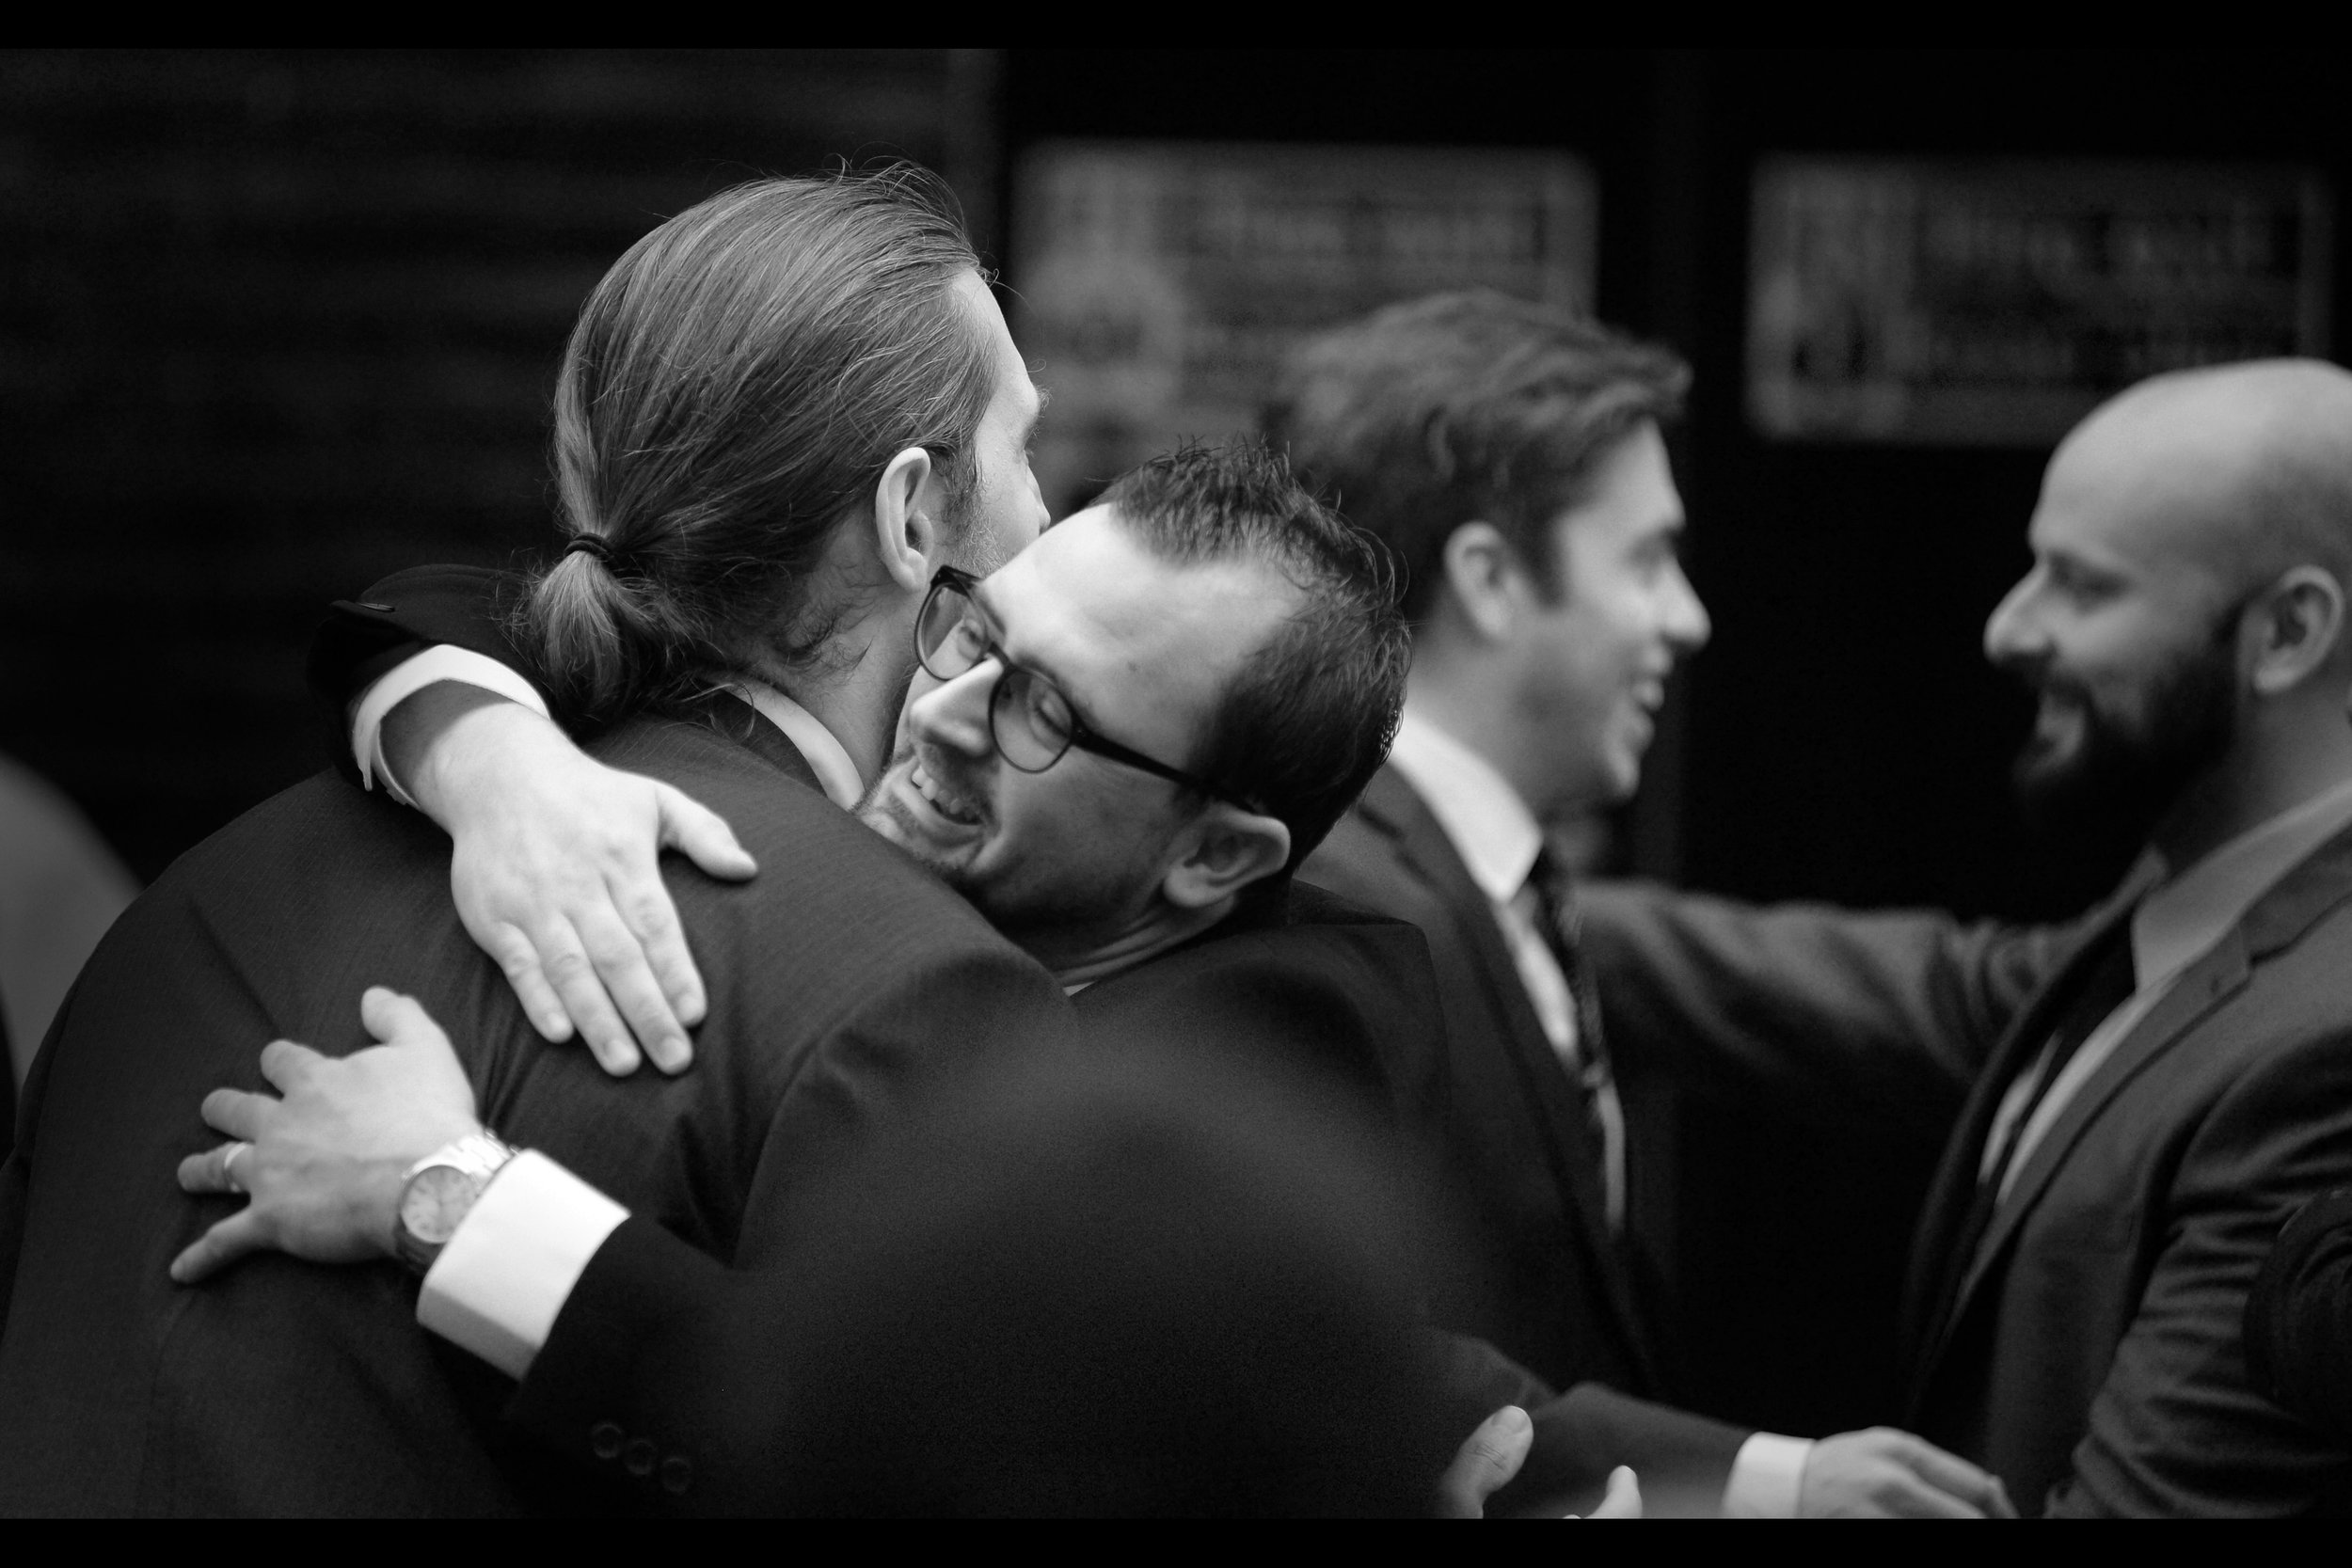 People hugging people usually means they're in the movie. Or perhaps just naturally affectionate in public places.  (edited to add : he's the director, Gene Fallaize)